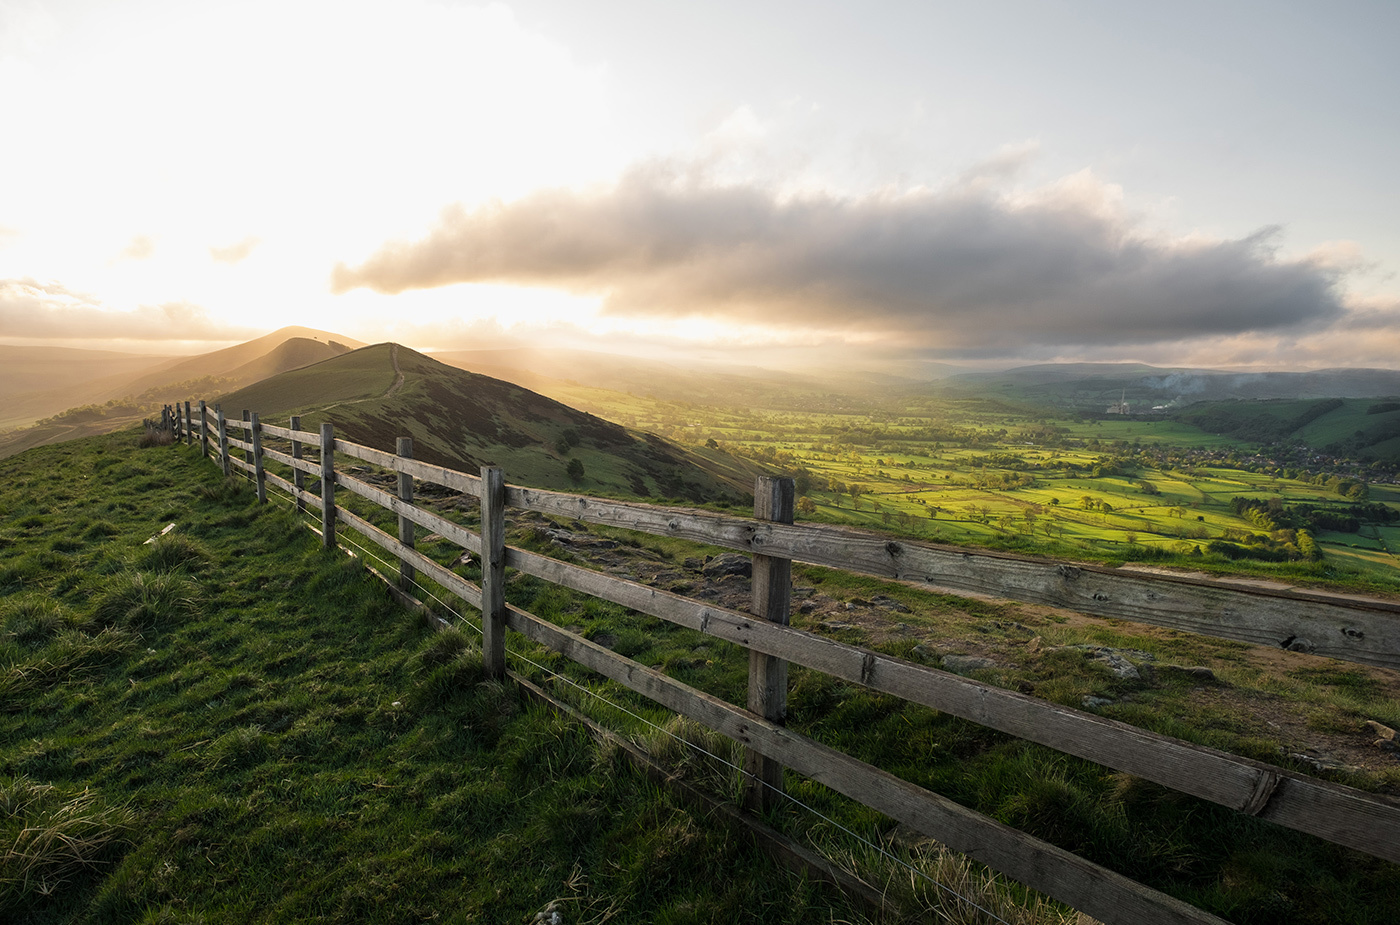 Seven Landscape Photography Tips I Wish I Knew in the